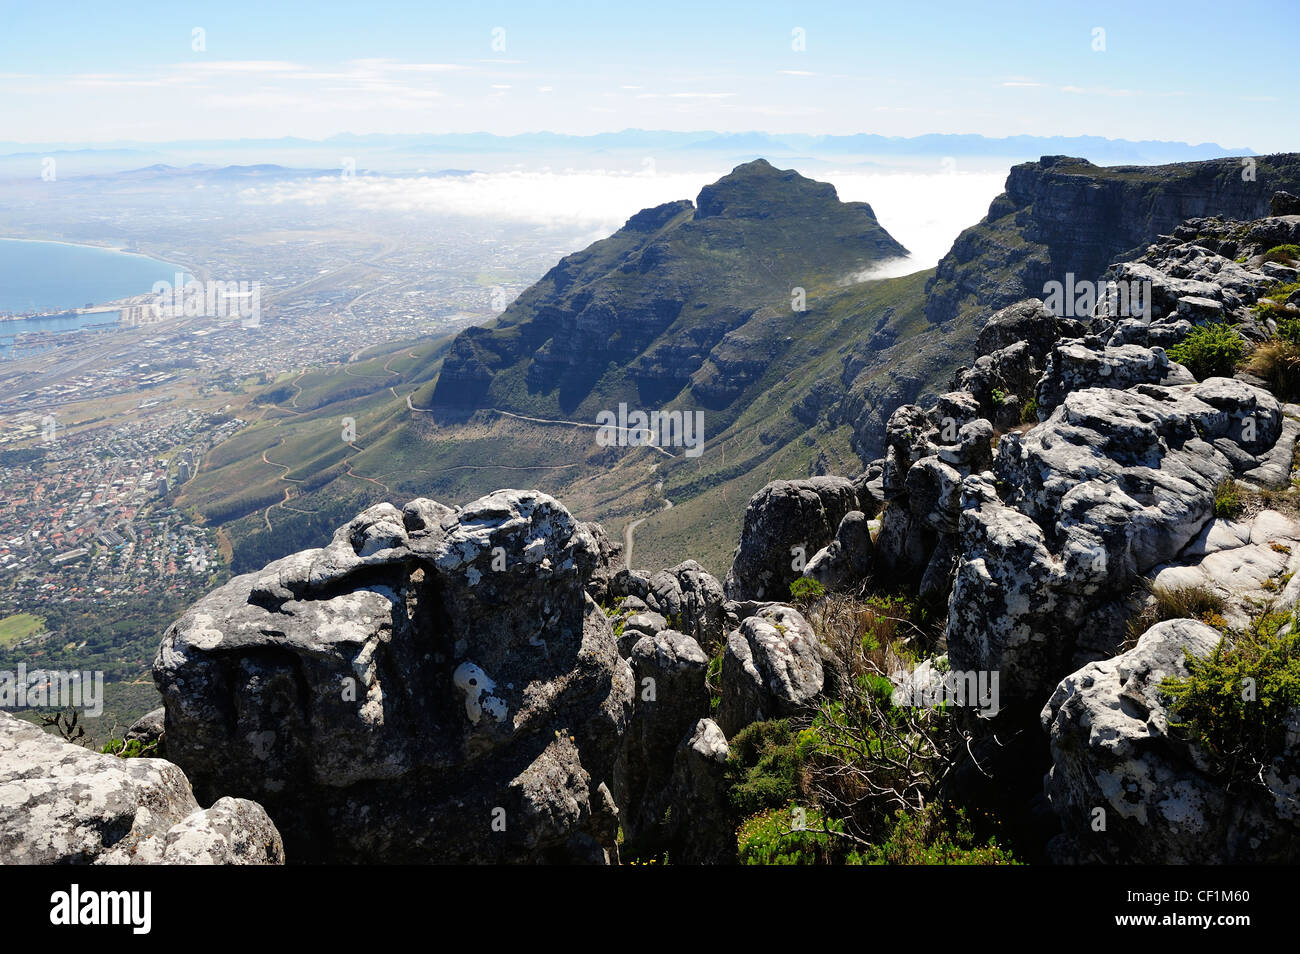 Sheer cliffs of Table Mountain, Cape Town, Western Cape, South Africa - Stock Image